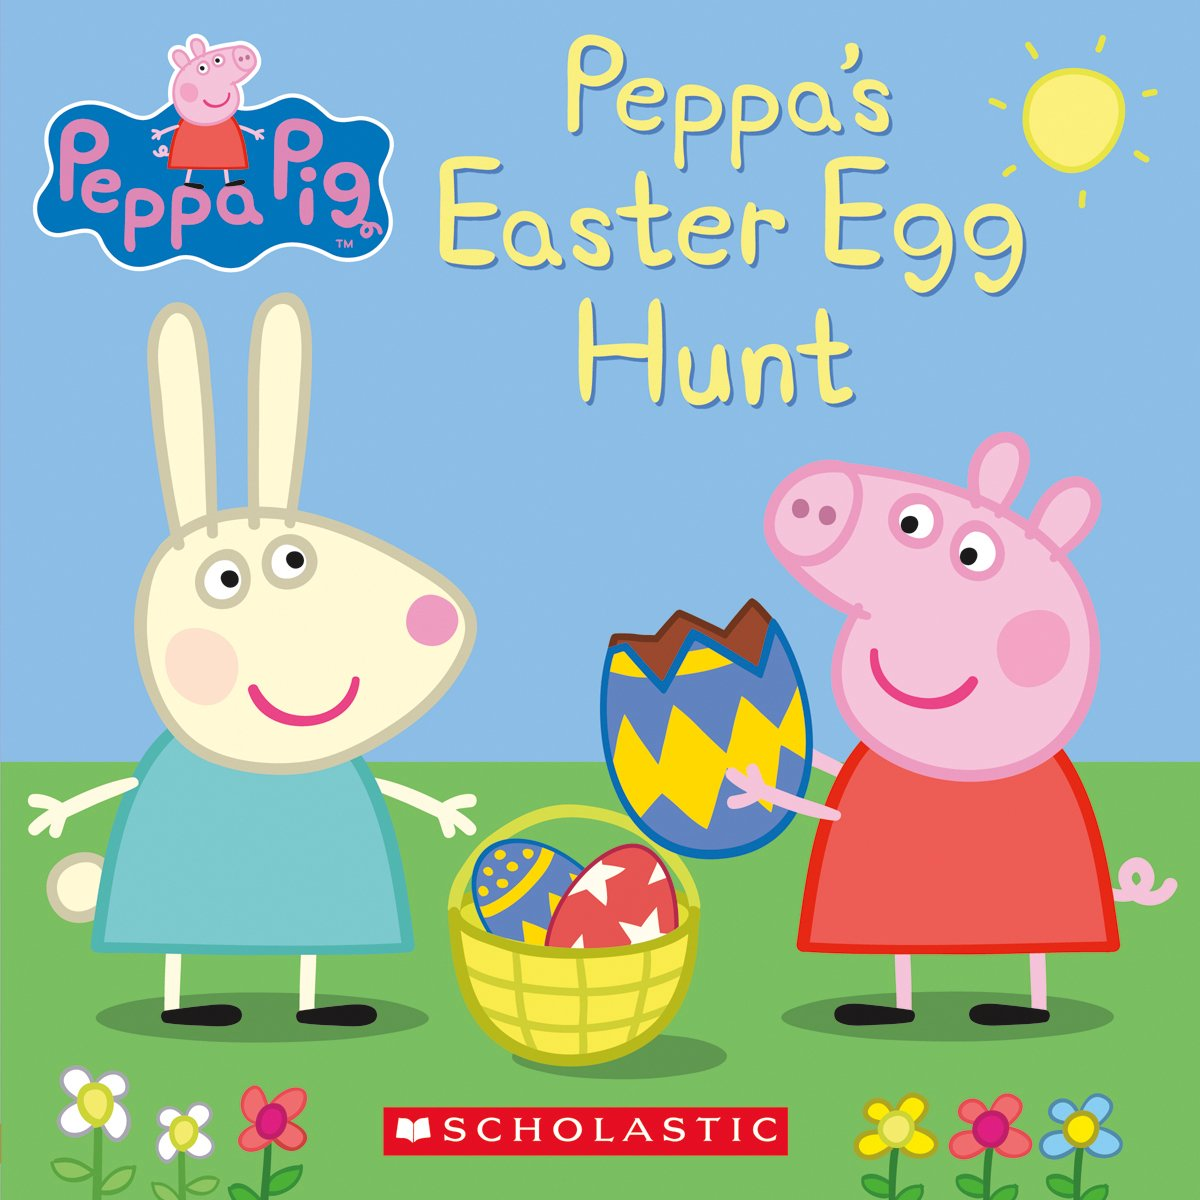 25 easter books for kids eighteen25 4 peppas easter egg hunt 25 easter books for kids easter books make great gifts and are perfect for easter negle Gallery